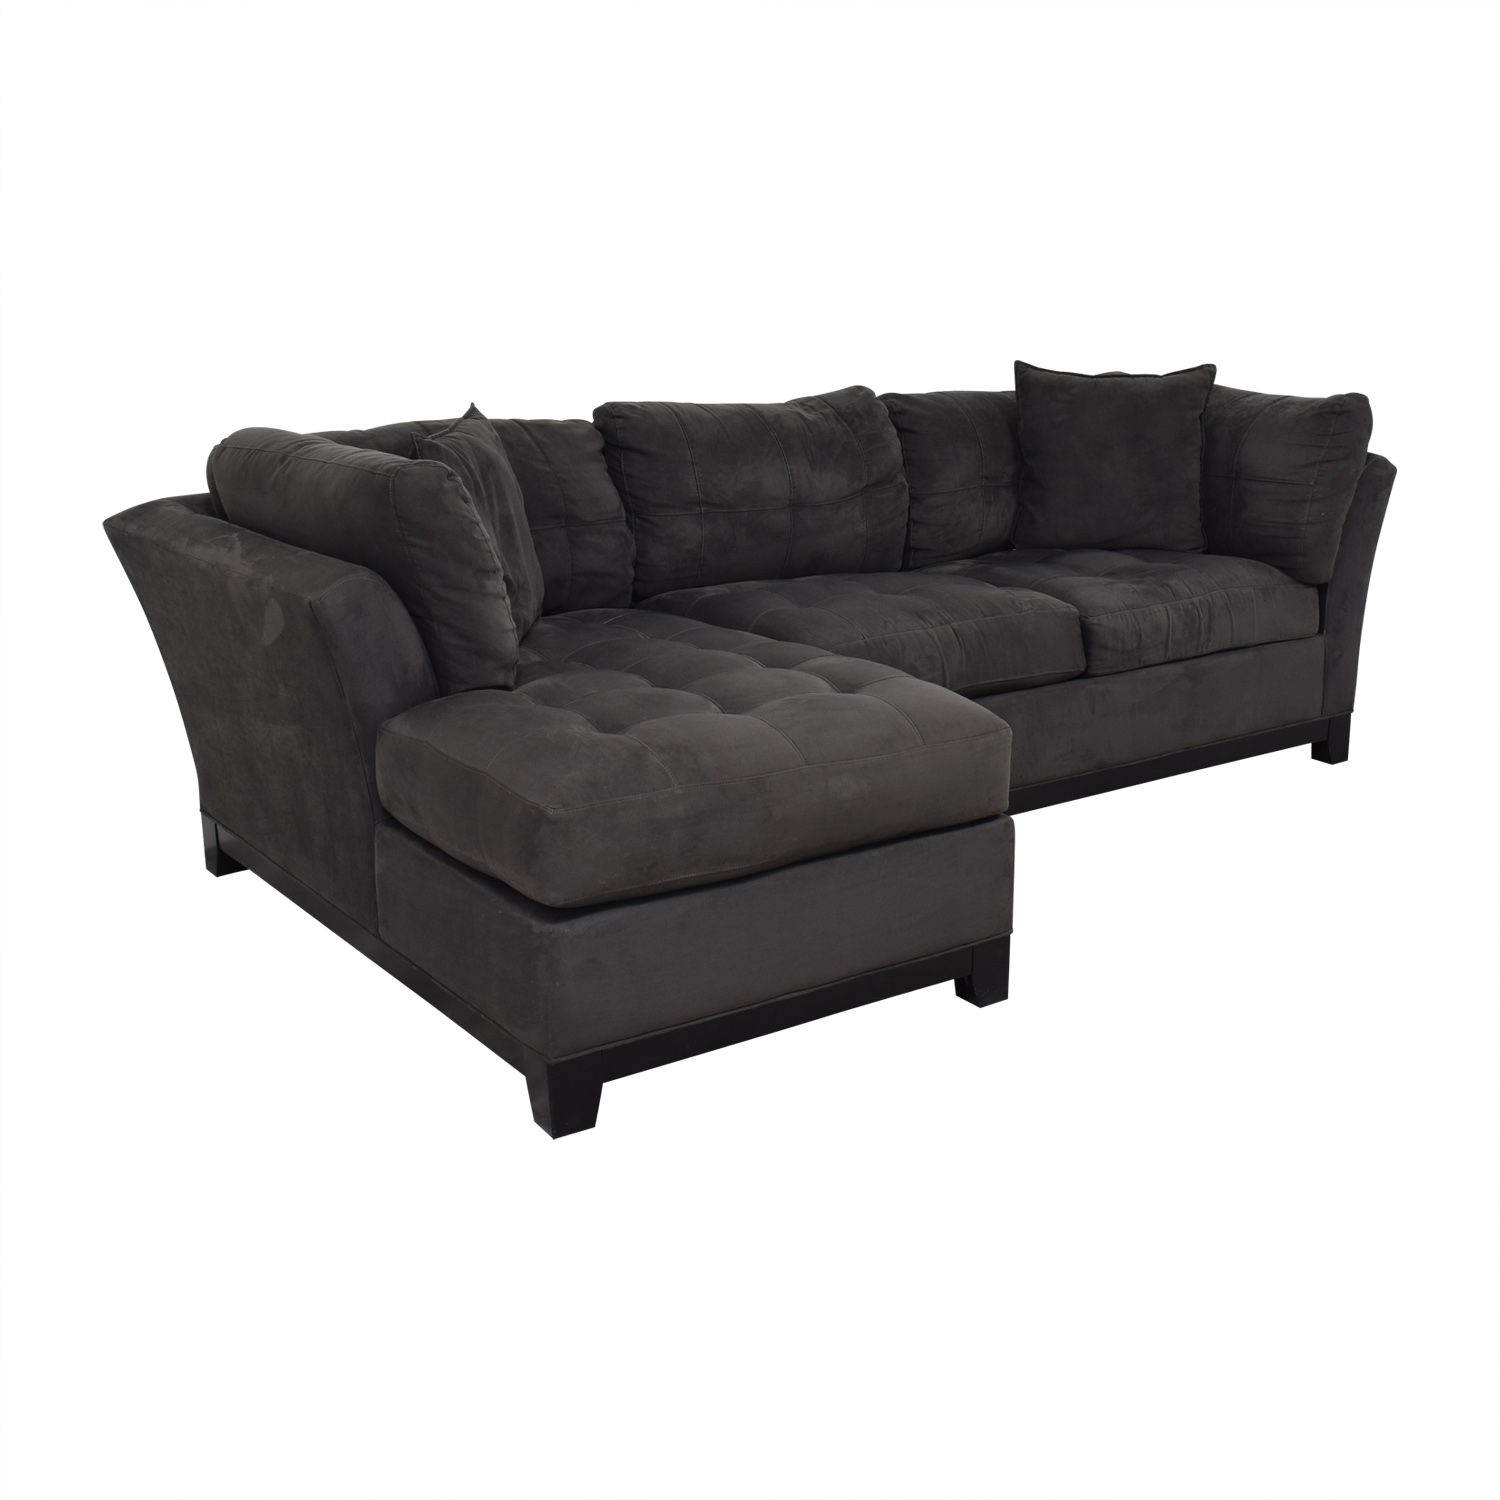 buy Cindy Crawford Home Metropolis Grey Microfiber Chaise Sectional Cindy Crawford Home Sofas